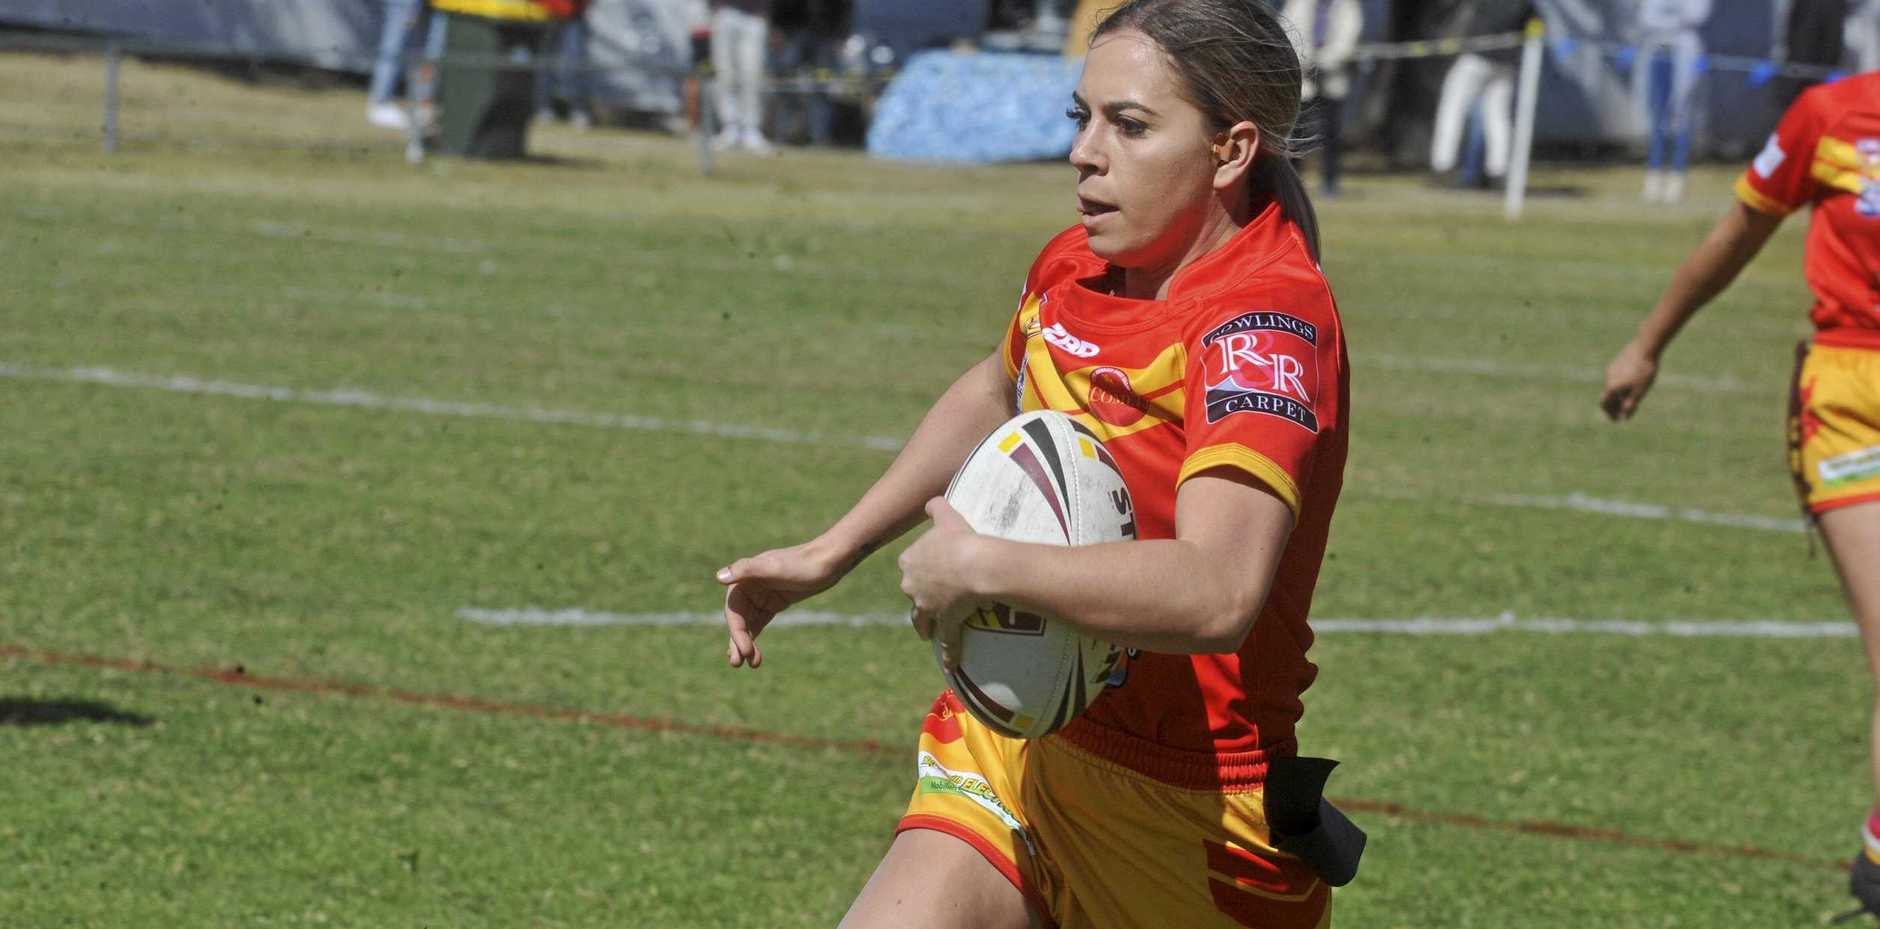 NEED FOR SPEED: Kiah Flett was instrumental in the Coffs Harbour Comets win over the Sawtell Panthers in the ladies league tag preliminary final at Frank McGuren Field on Sunday.